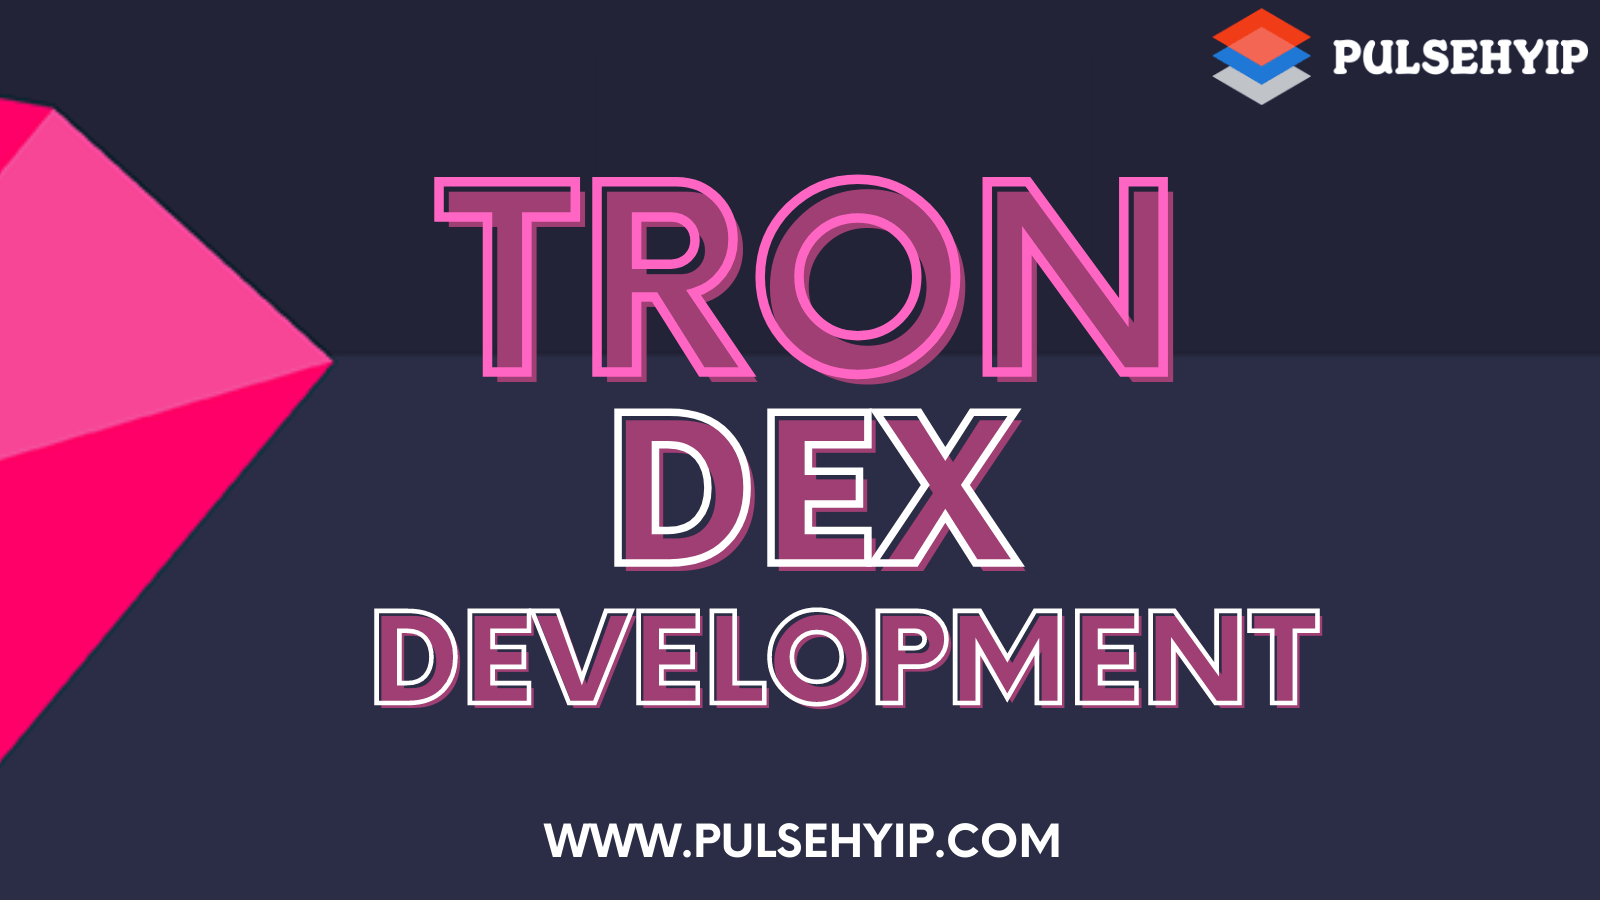 https://res.cloudinary.com/dl4a1x3wj/image/upload/v1602598190/pulsehyip/TRON-DEX-Development-Pulsehyip.png